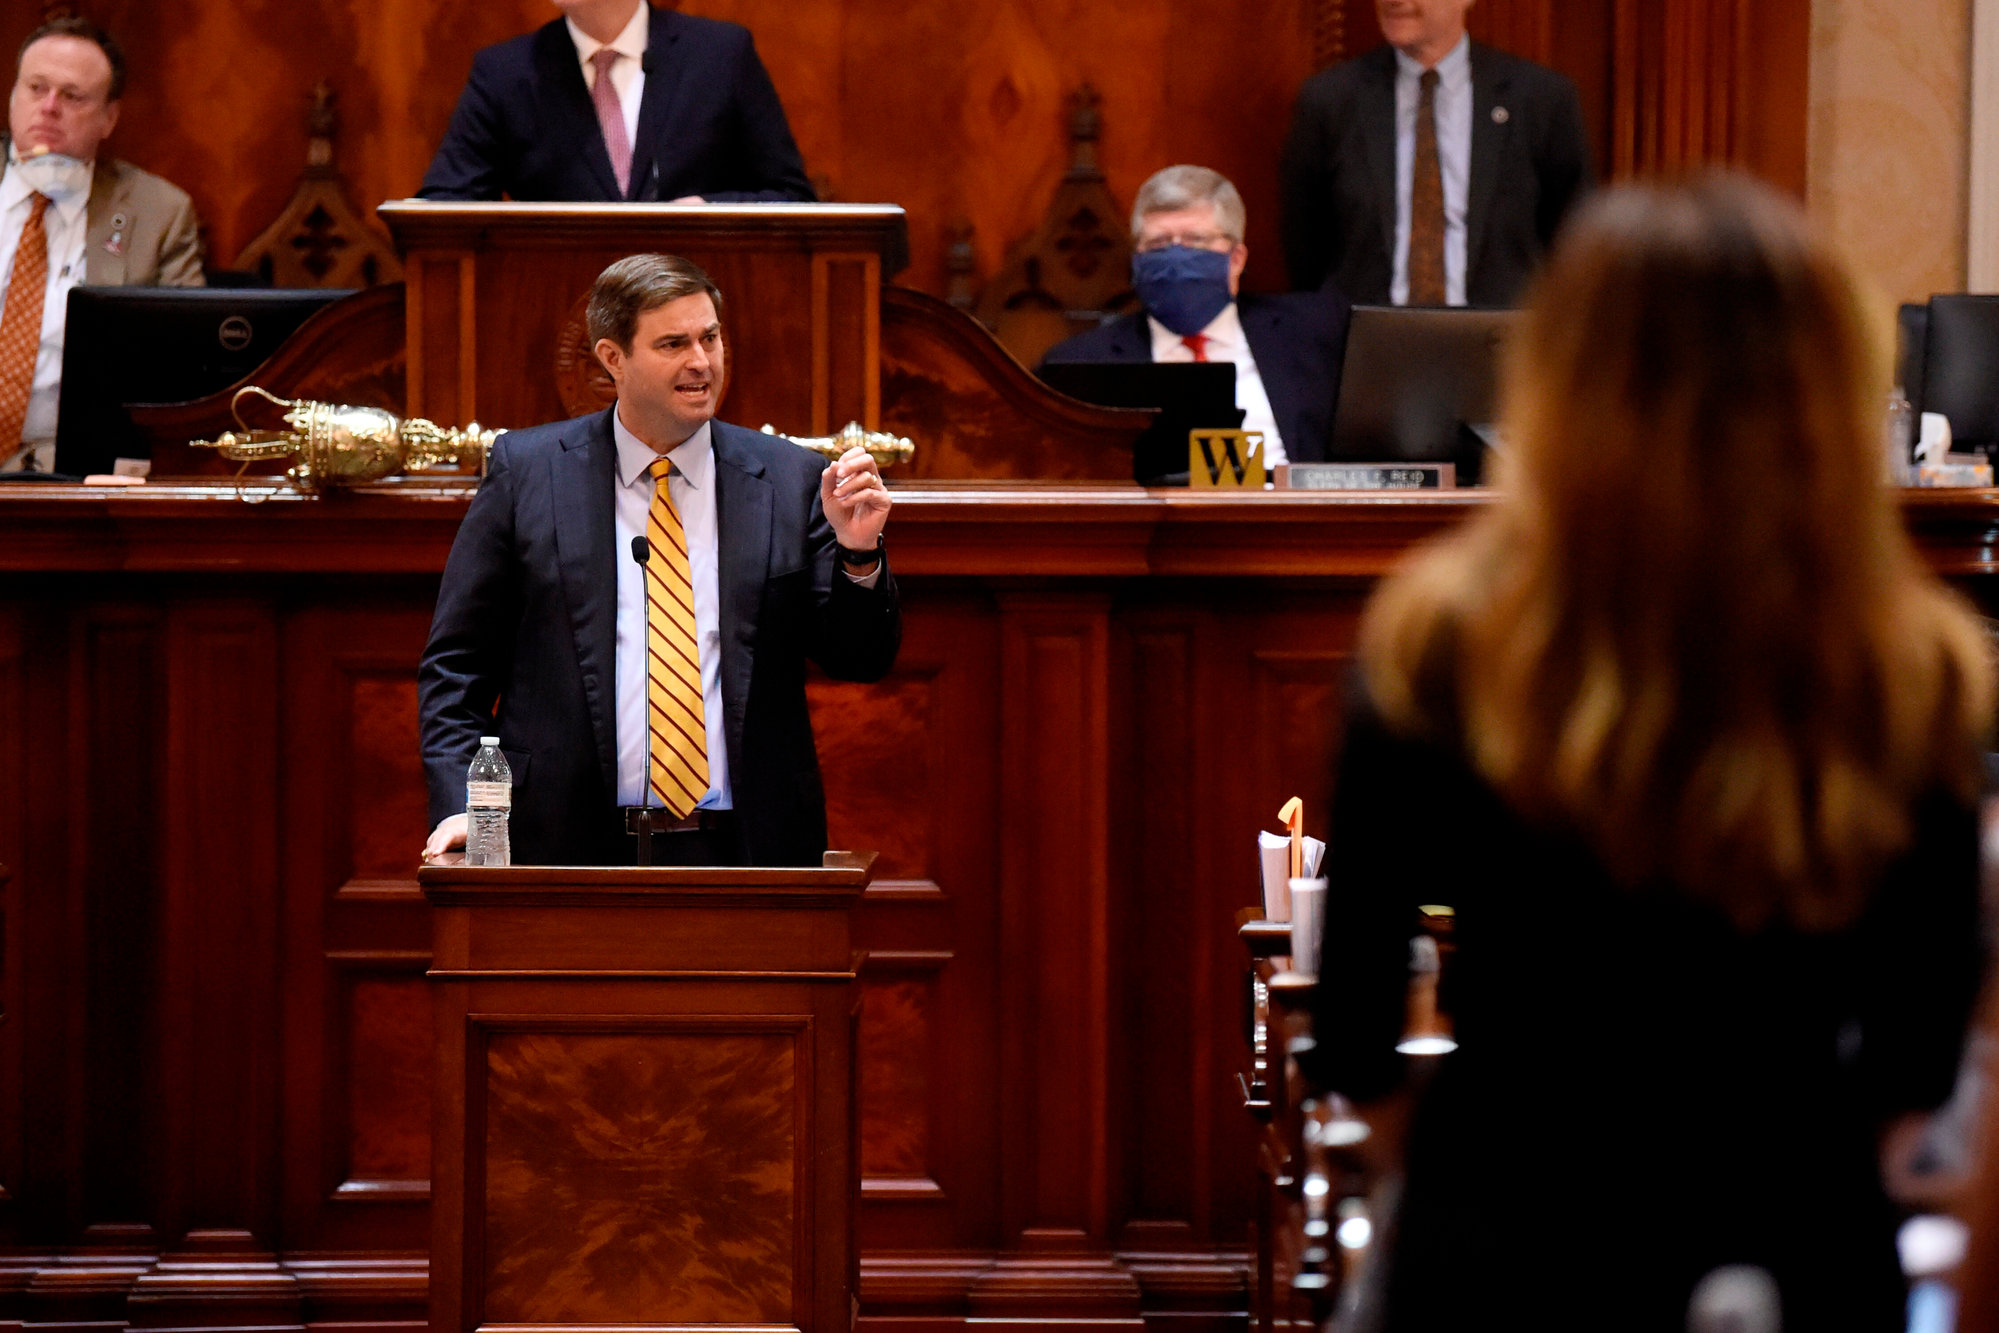 House Ways and Means Committee Chairman Murrell Smith, center, answers a question from state Rep. Nancy Mace, right, on the House floor during a special, one-day session of the South Carolina Legislature on Wednesday, April 8, 2020, in Columbia.